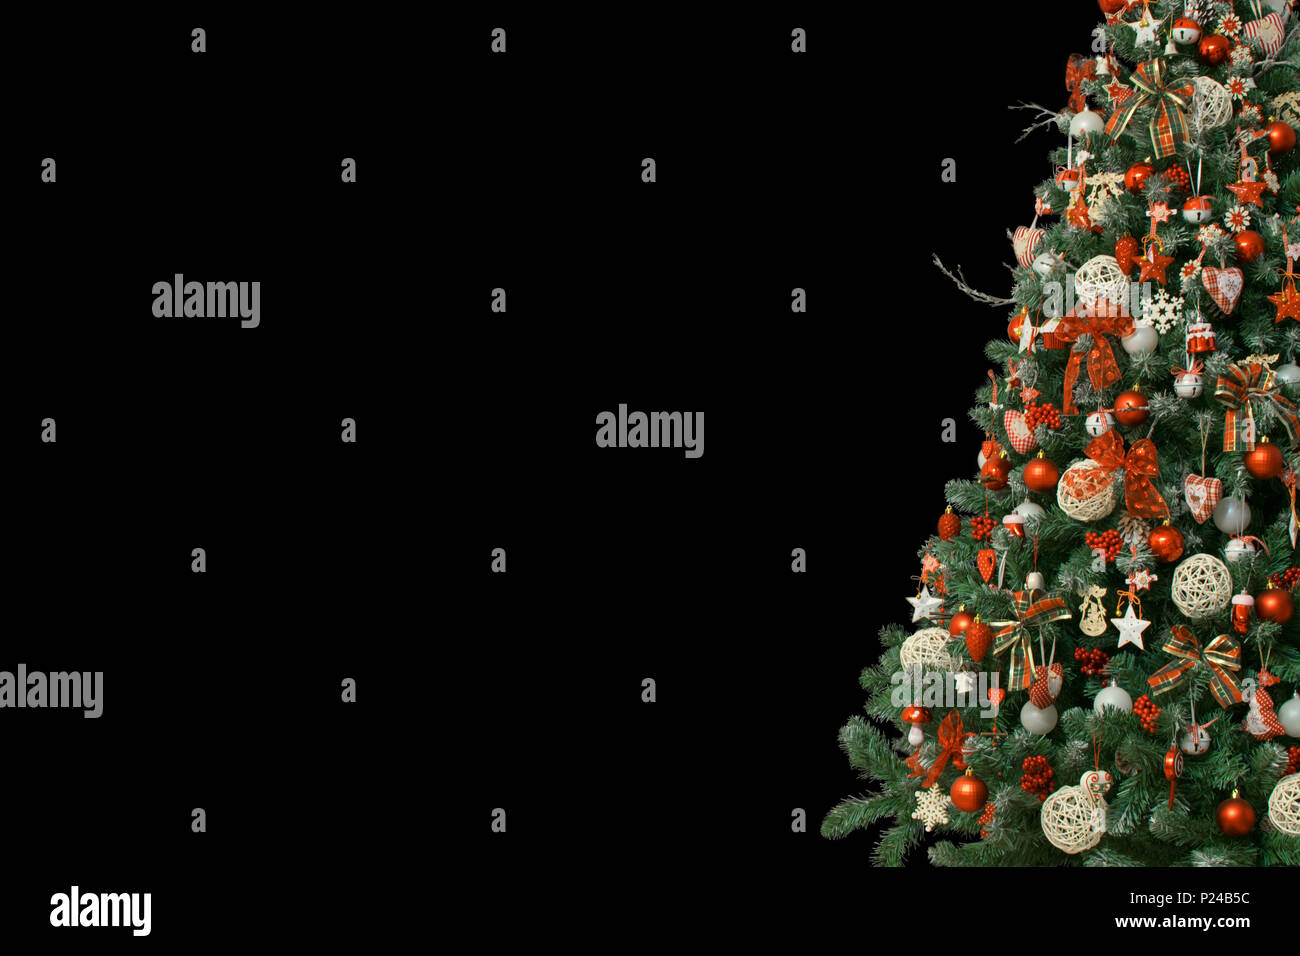 Detail Of Christmas Tree Isolated On Black Background Decorated With Vintage Ornaments Ratan Balls Burlap And Tartan Ribbons Red Balls Stock Photo Alamy